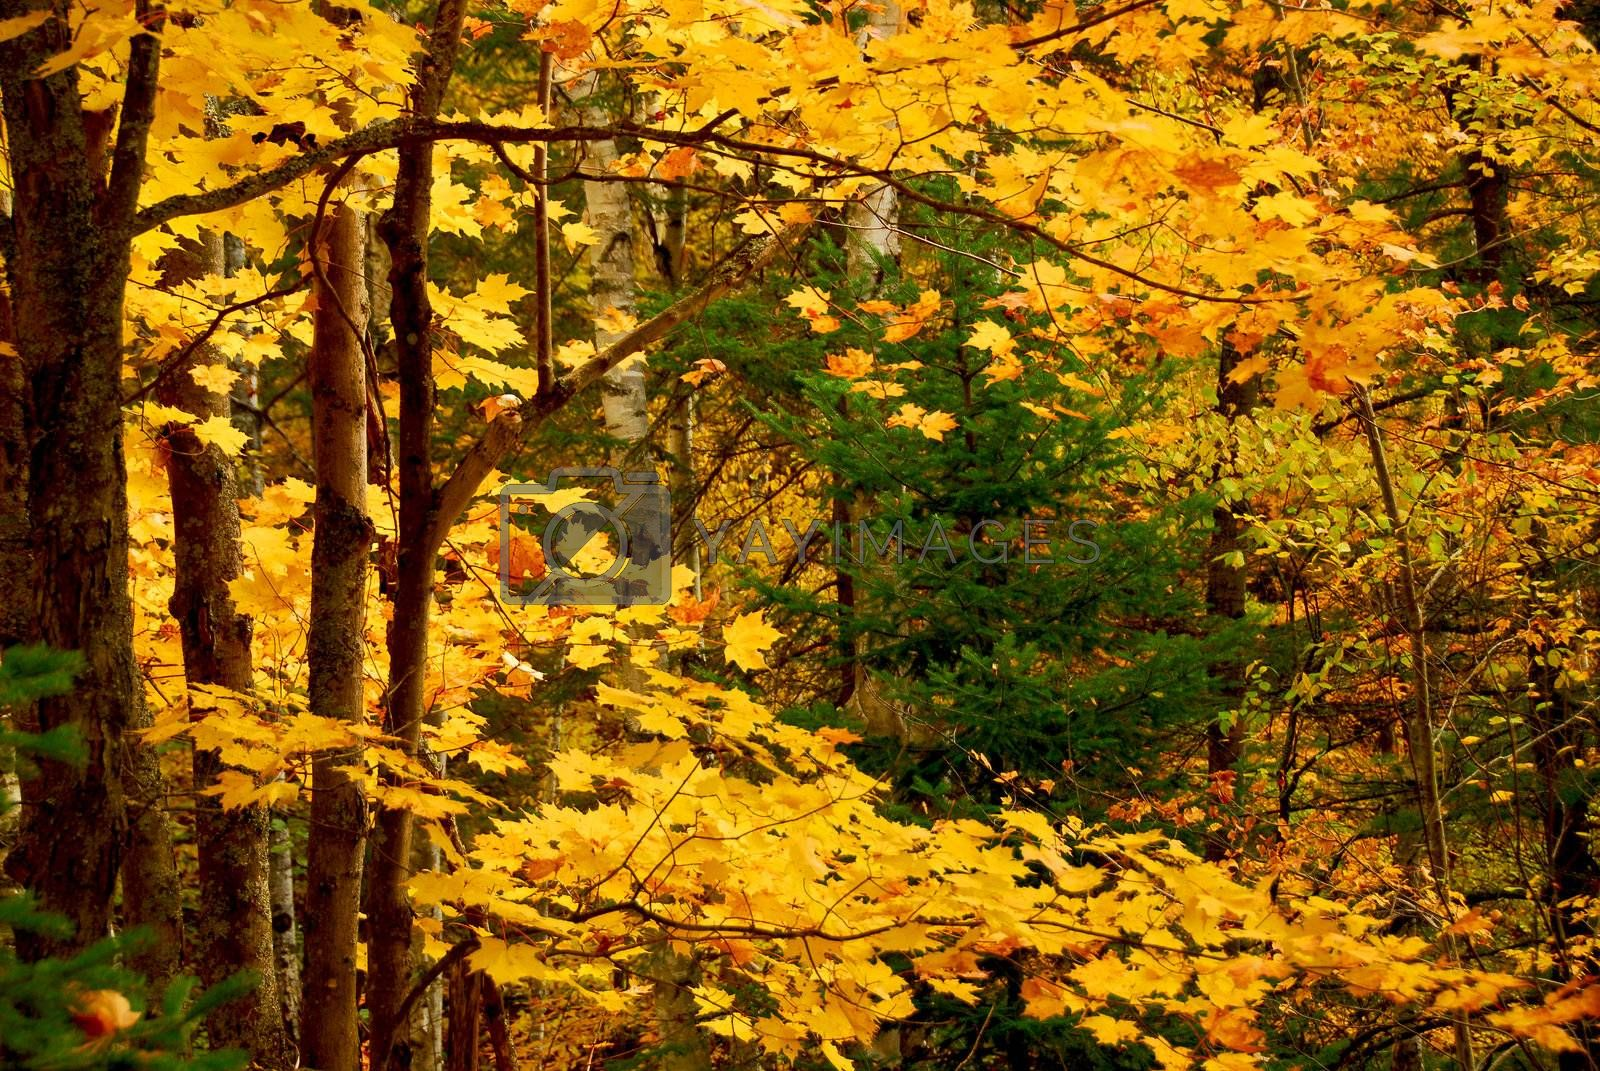 Colorful fall forest background with maples trees